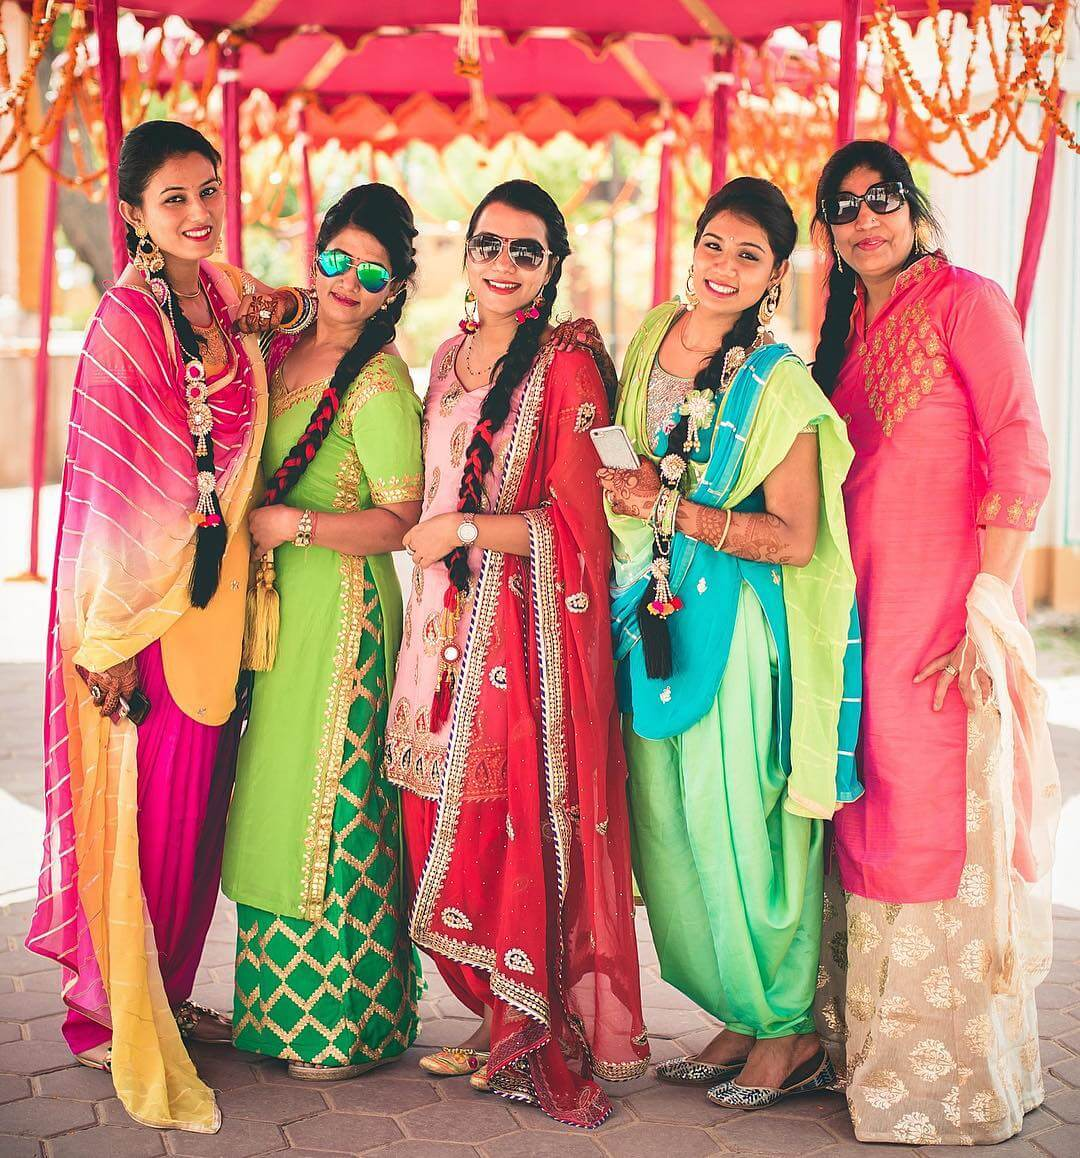 Photoshoot Bridal Pose With BFFs In Patiala Suit